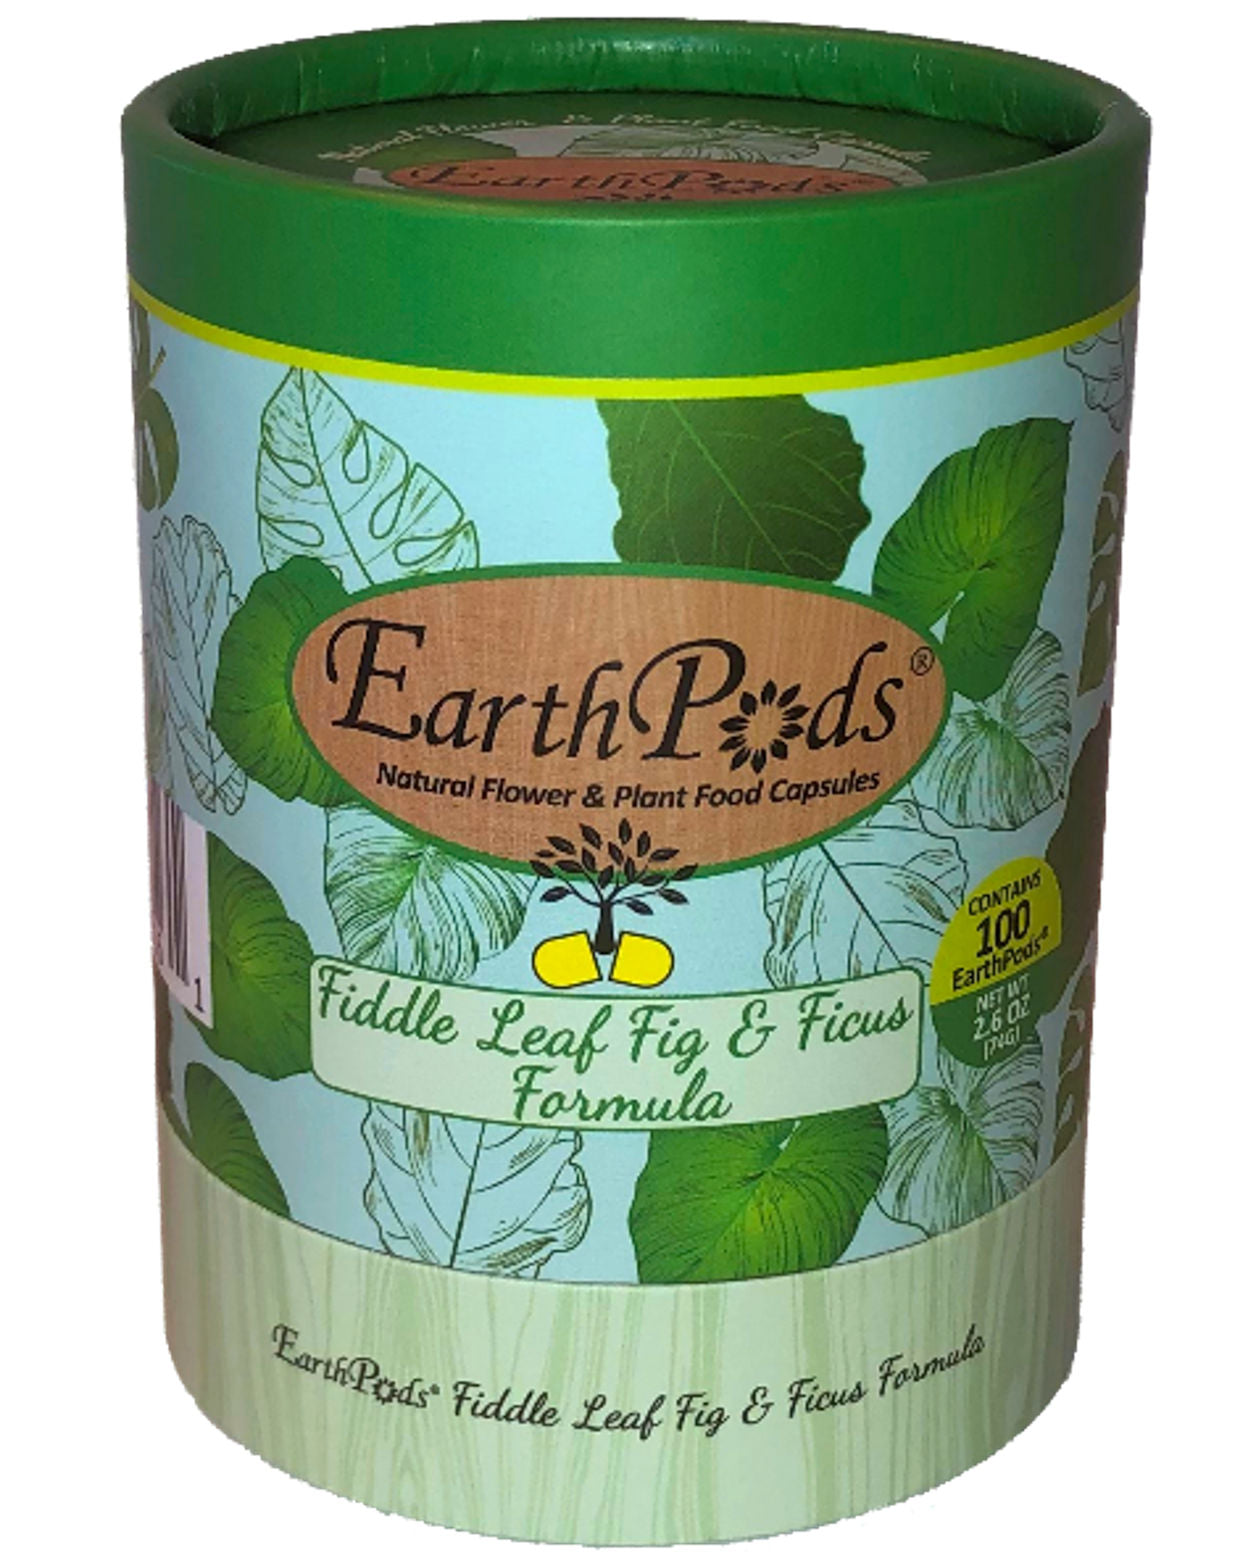 Earthpods® Fiddle Leaf Fig & Ficus Organic Plant Food Spikes (100 Fertilizer Capsules)